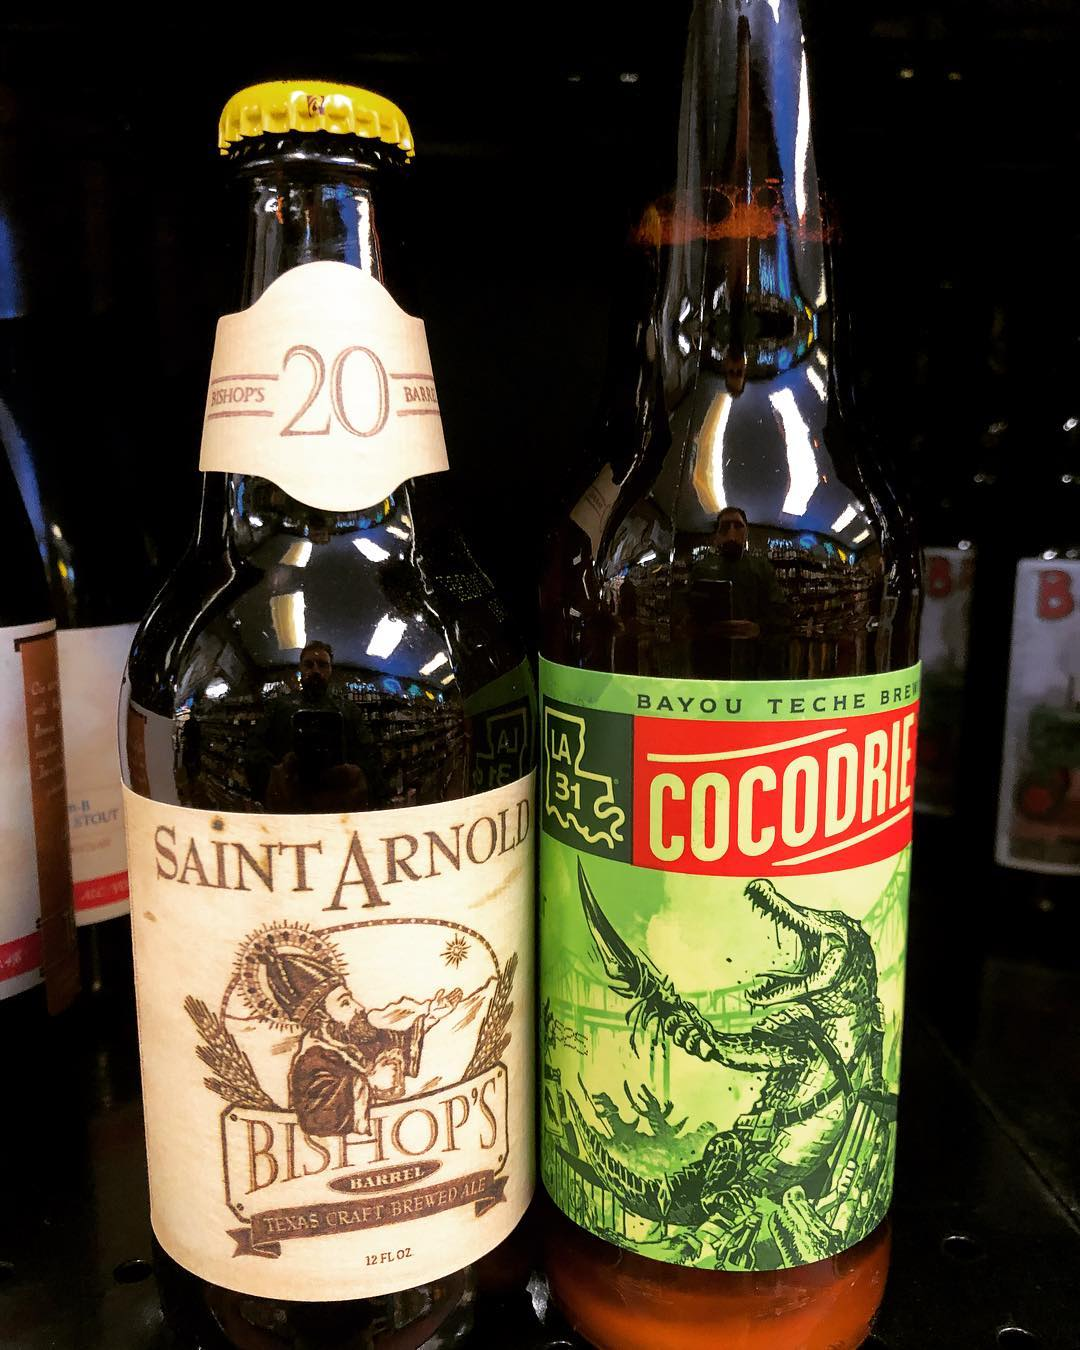 New brews in stock from @saintarnoldbrewing and the relaunch of @bayoutechebrewing DDH Cocodrie now at…